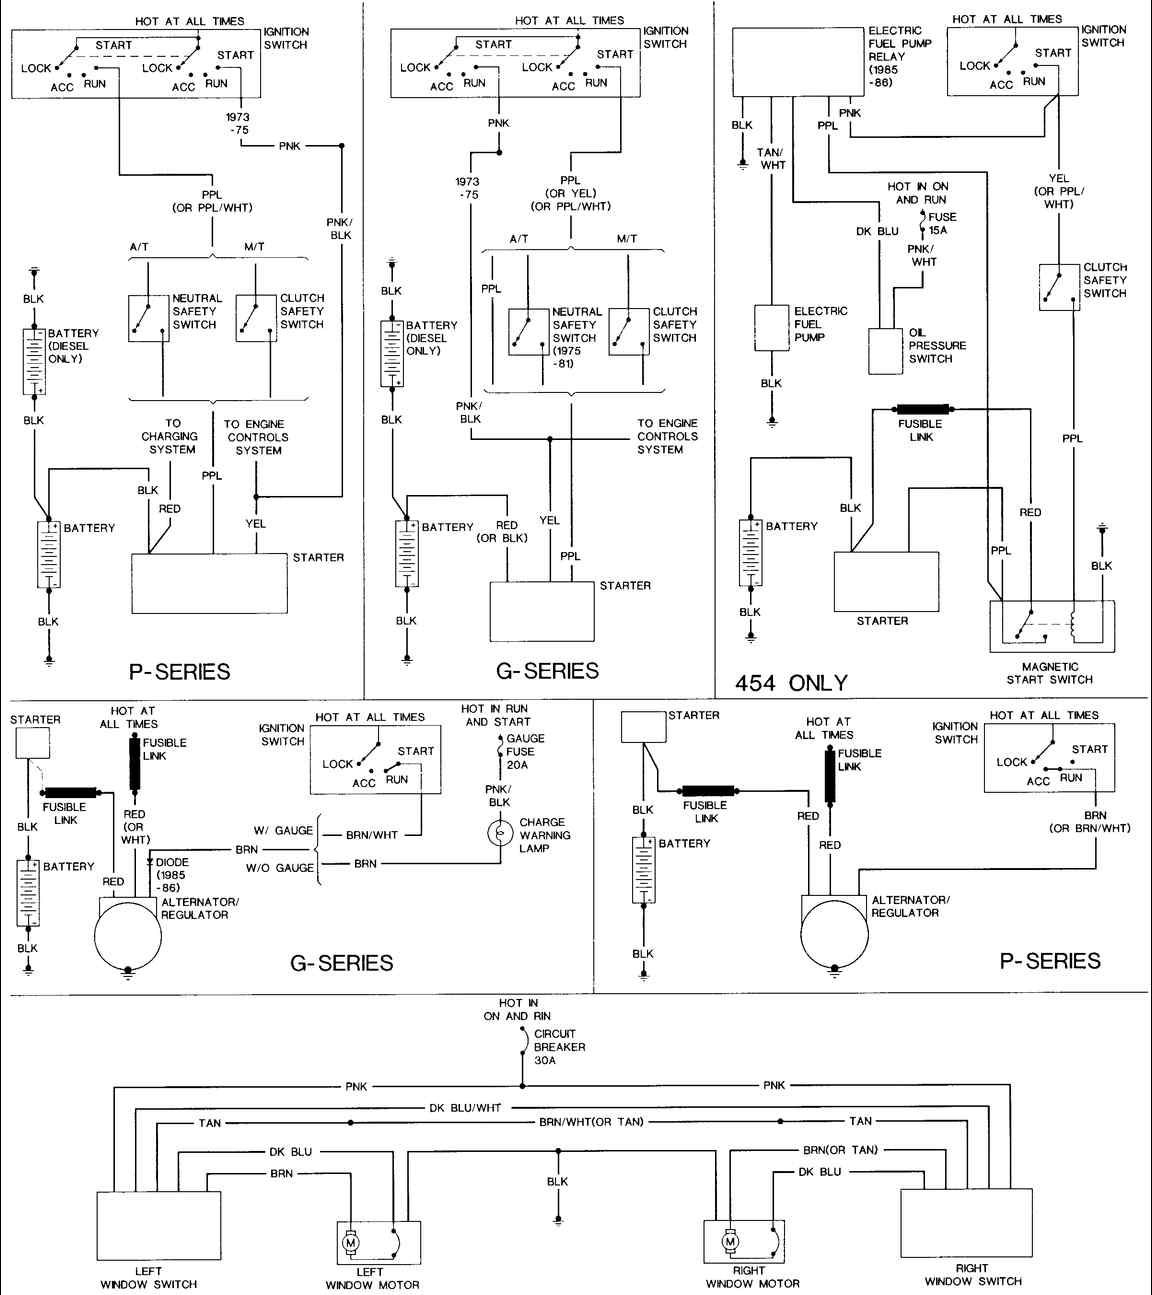 0c73623a181dc376dbb4777e2029d285 85 chevy truck wiring diagram 85 chevy van the steering column 1984 chevy truck wiring diagrams at edmiracle.co